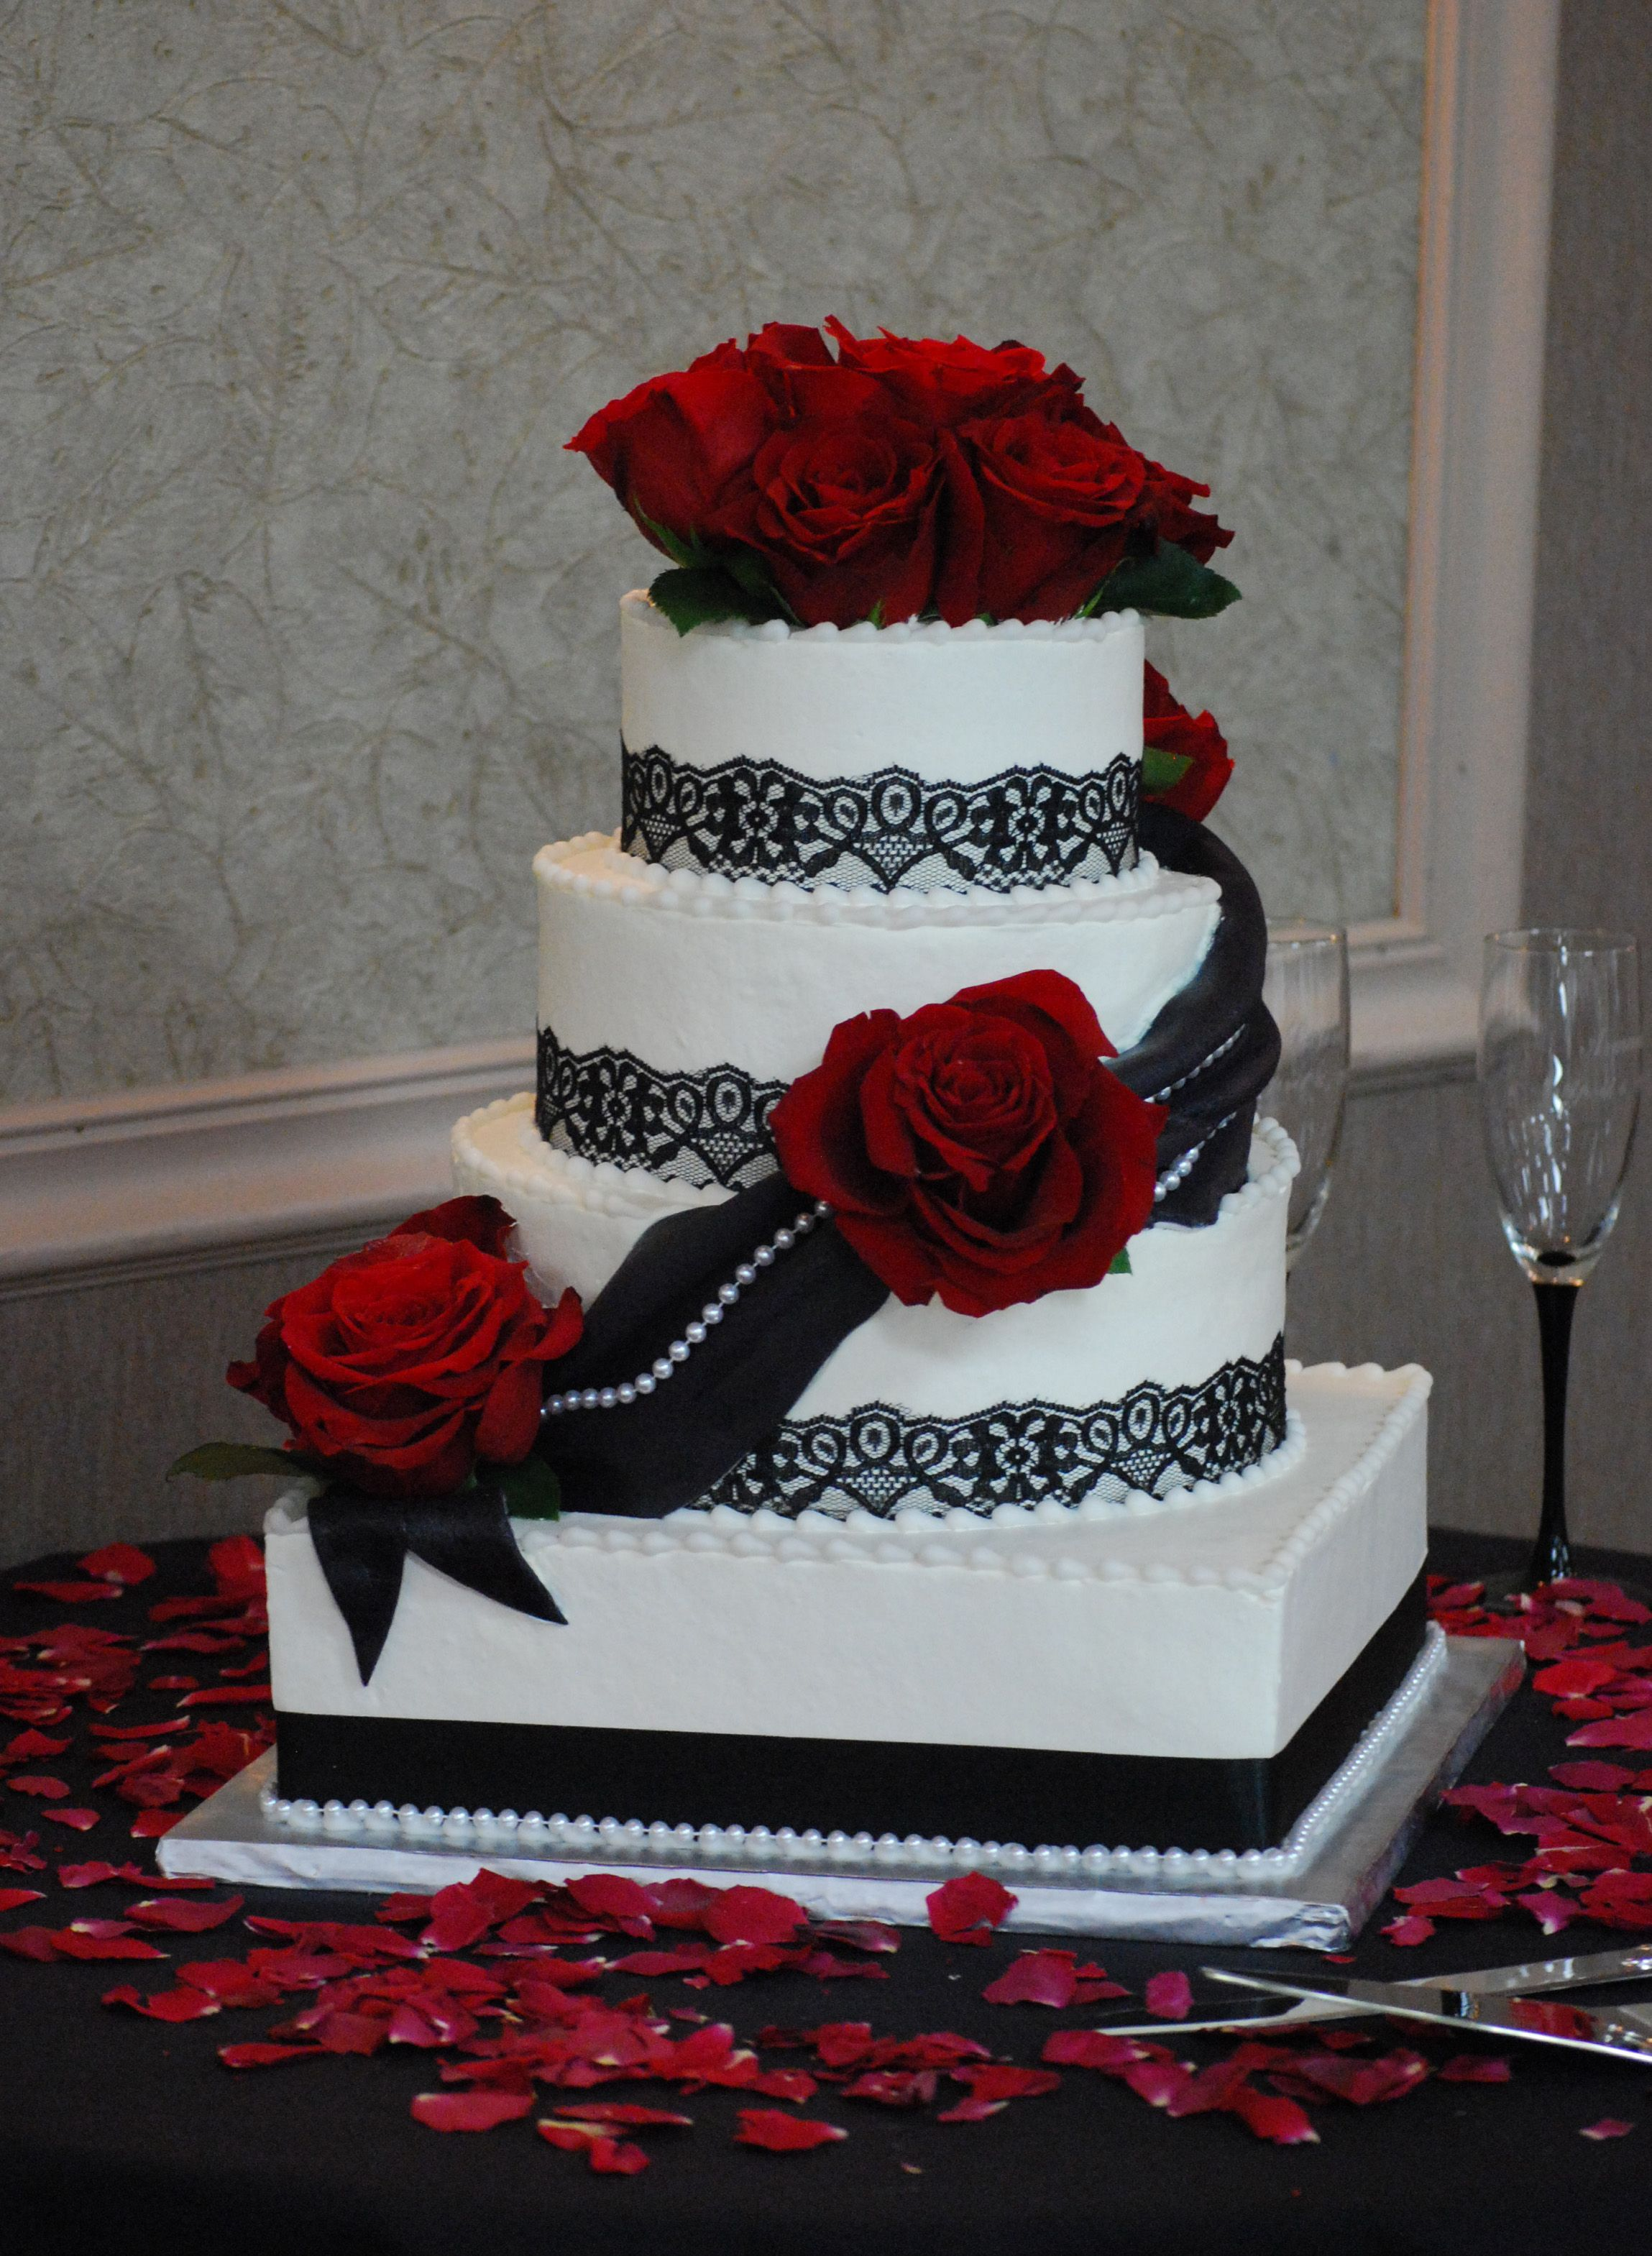 Square And Round Wedding Cake With Black Lace Borders